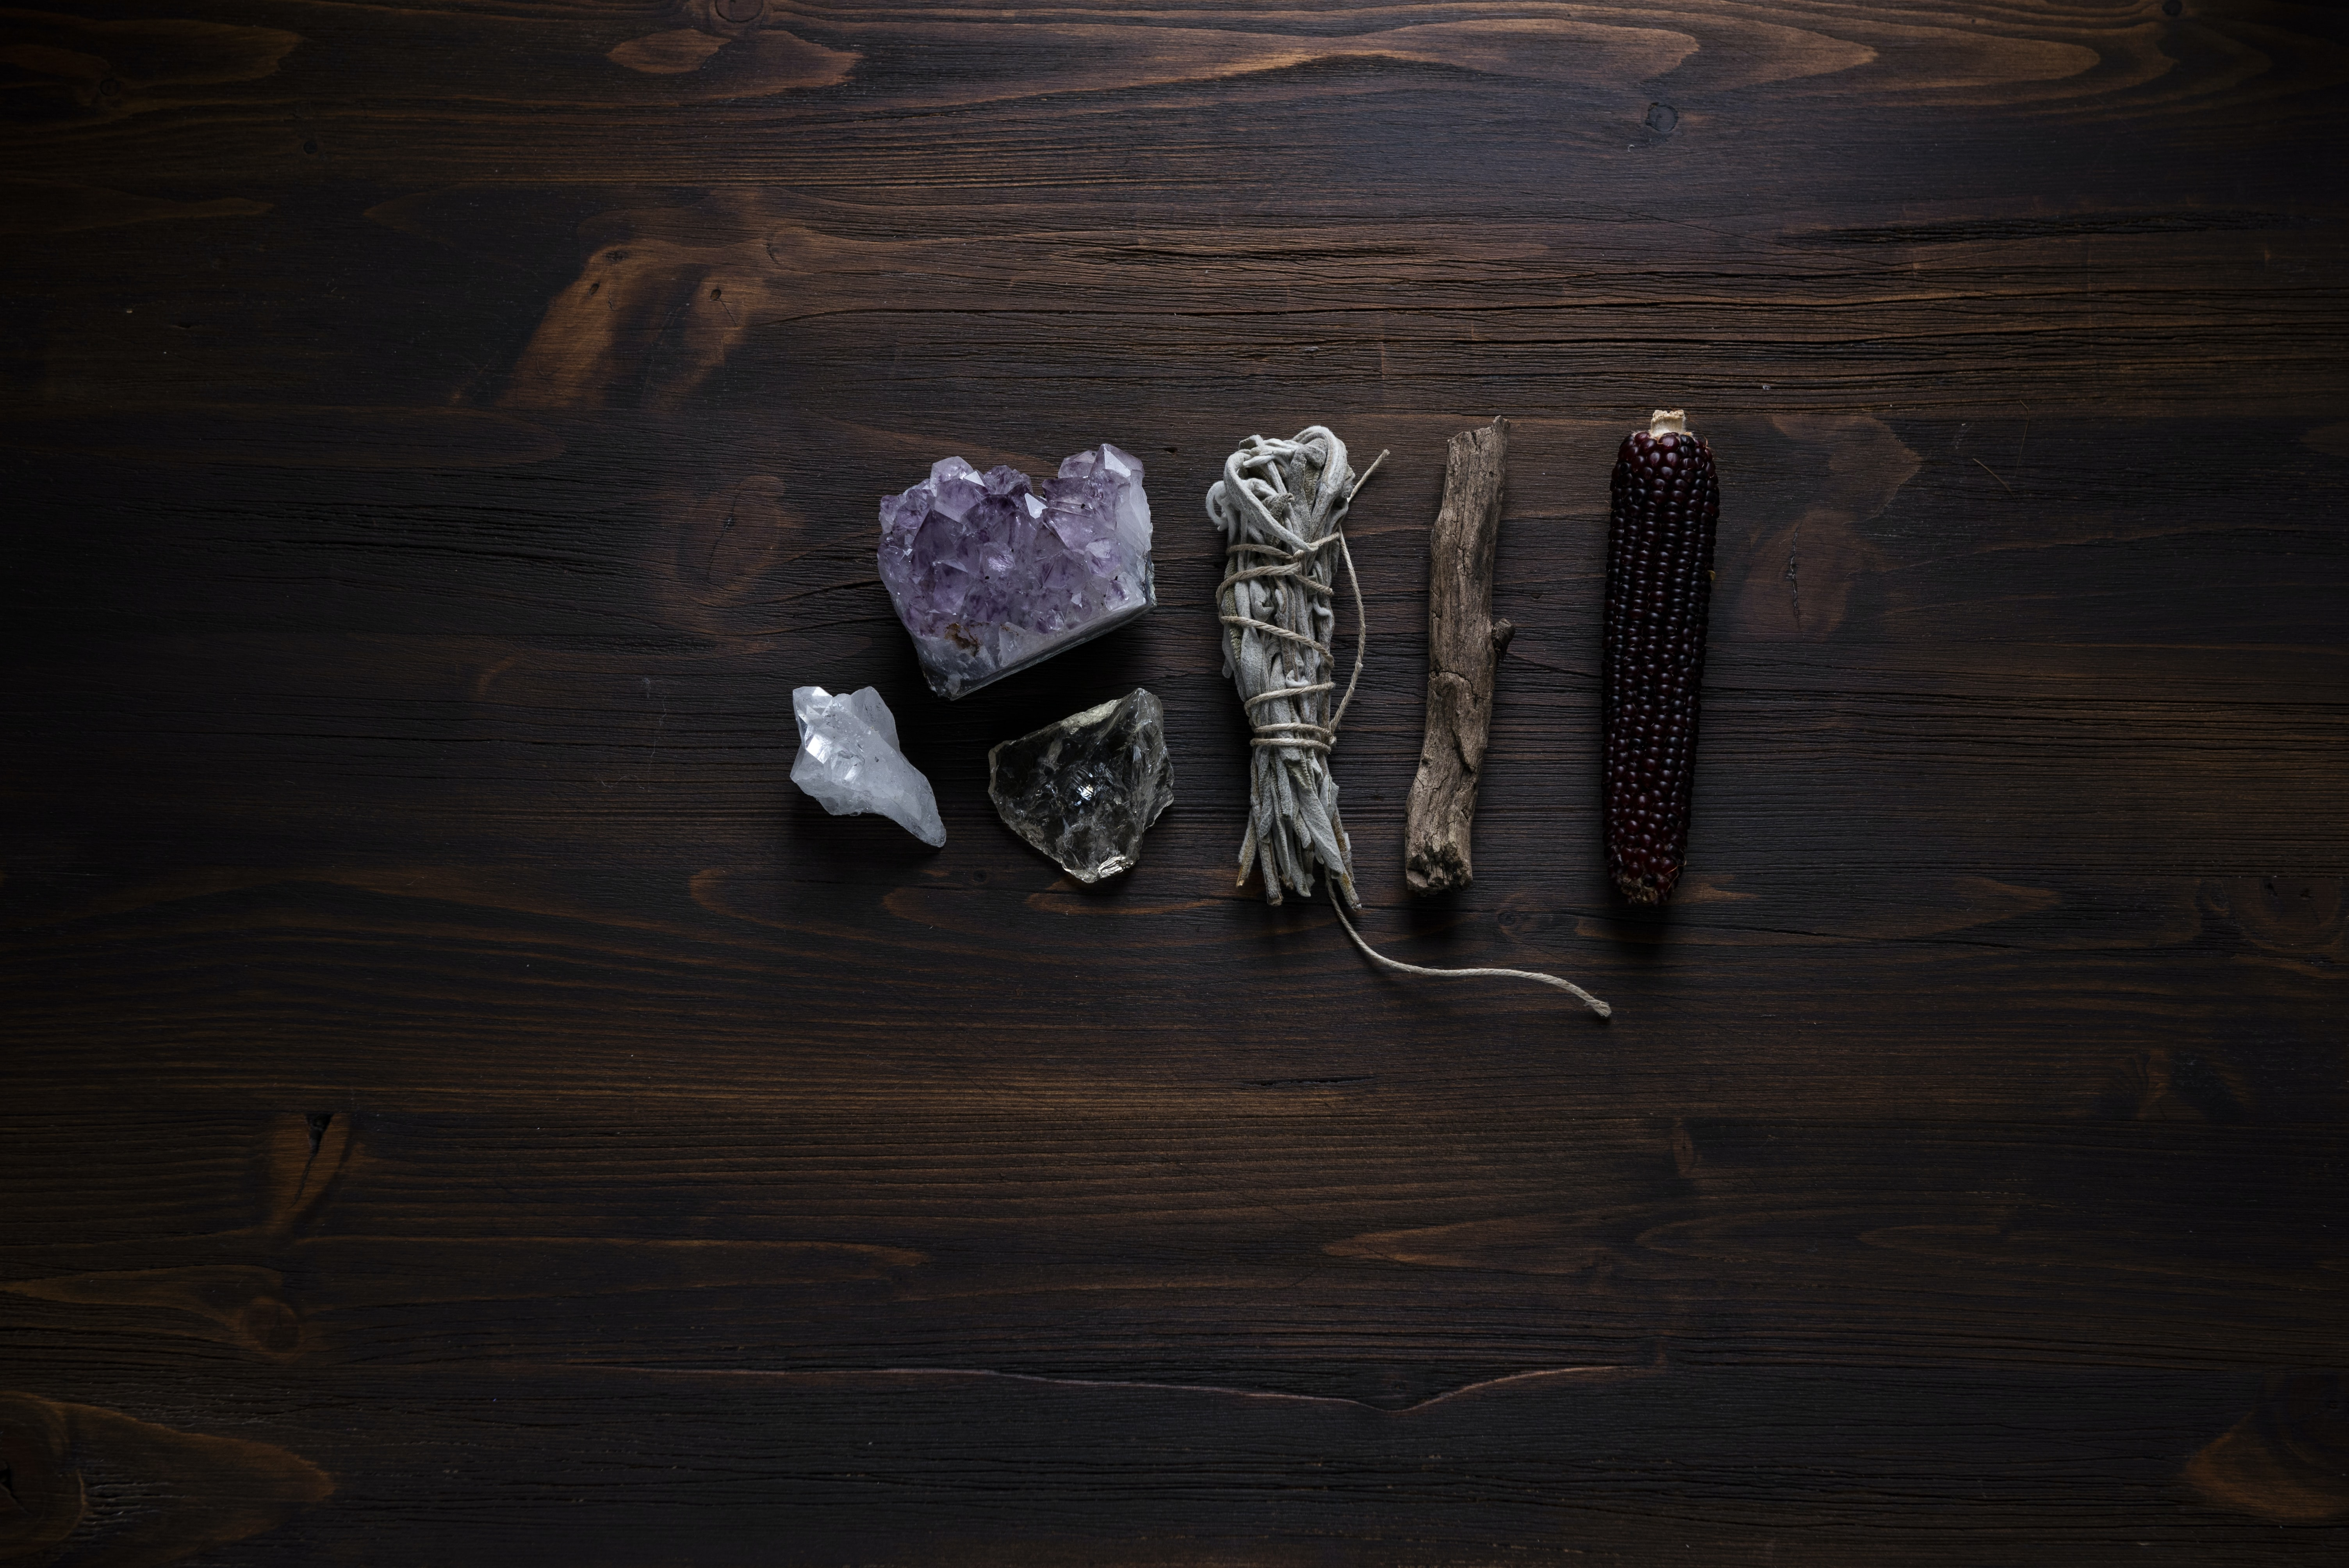 flat lay photography of geodes